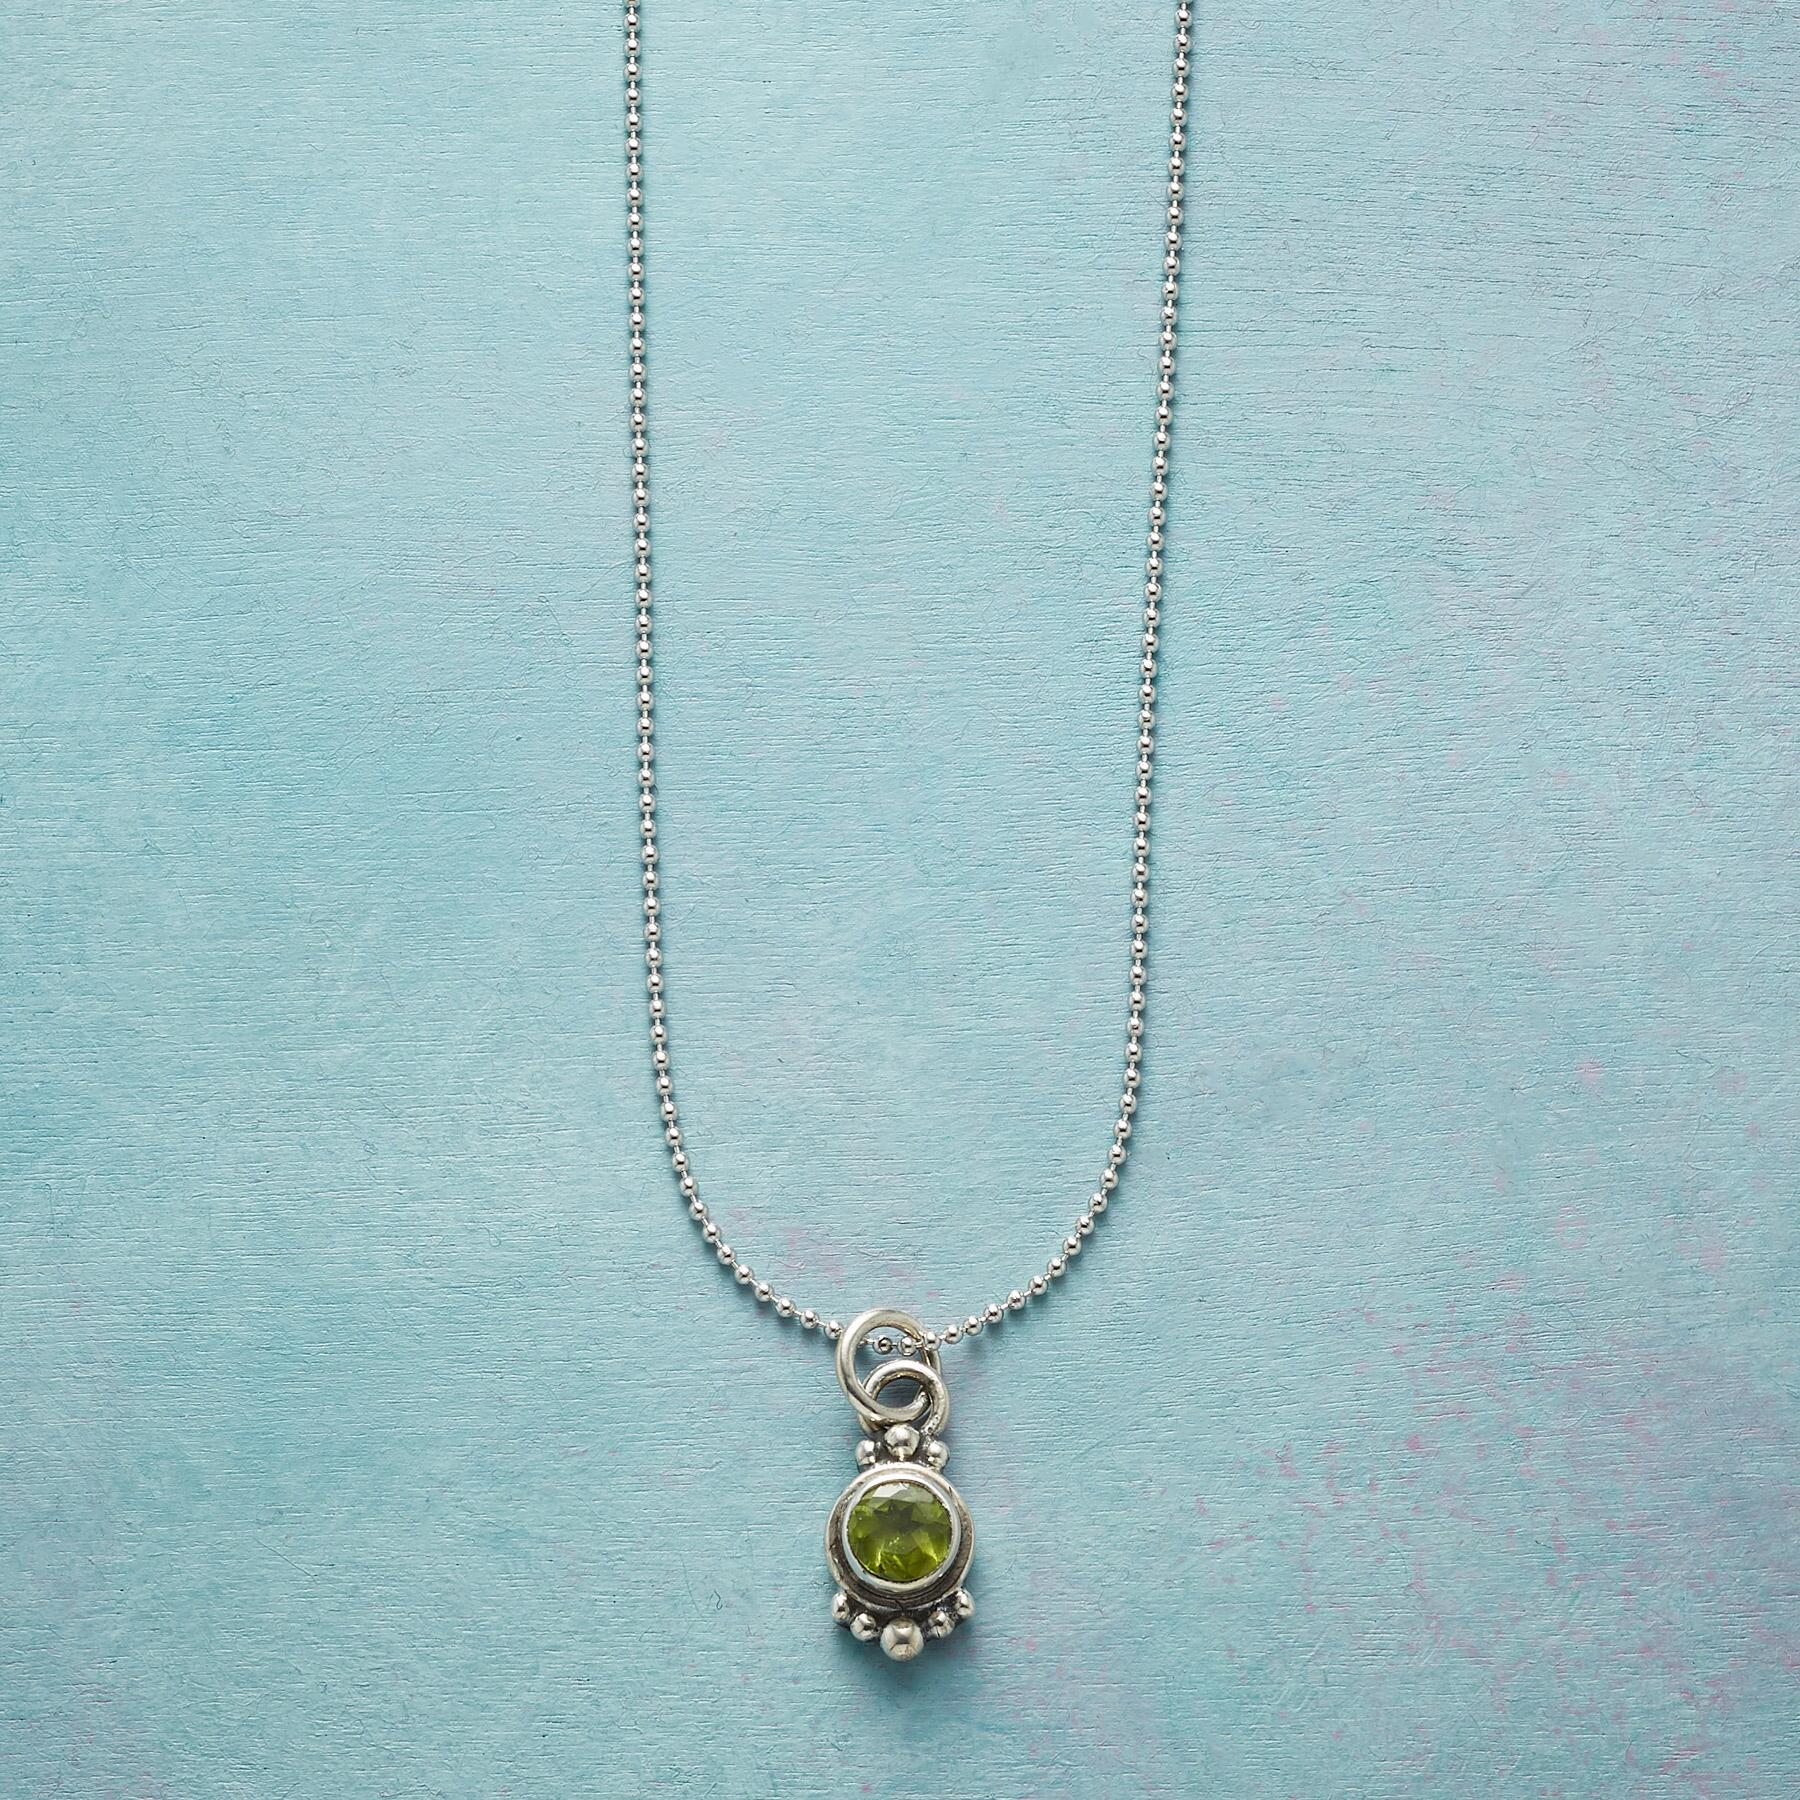 ART OF LOVE BIRTHSTONE NECKLACE: View 1